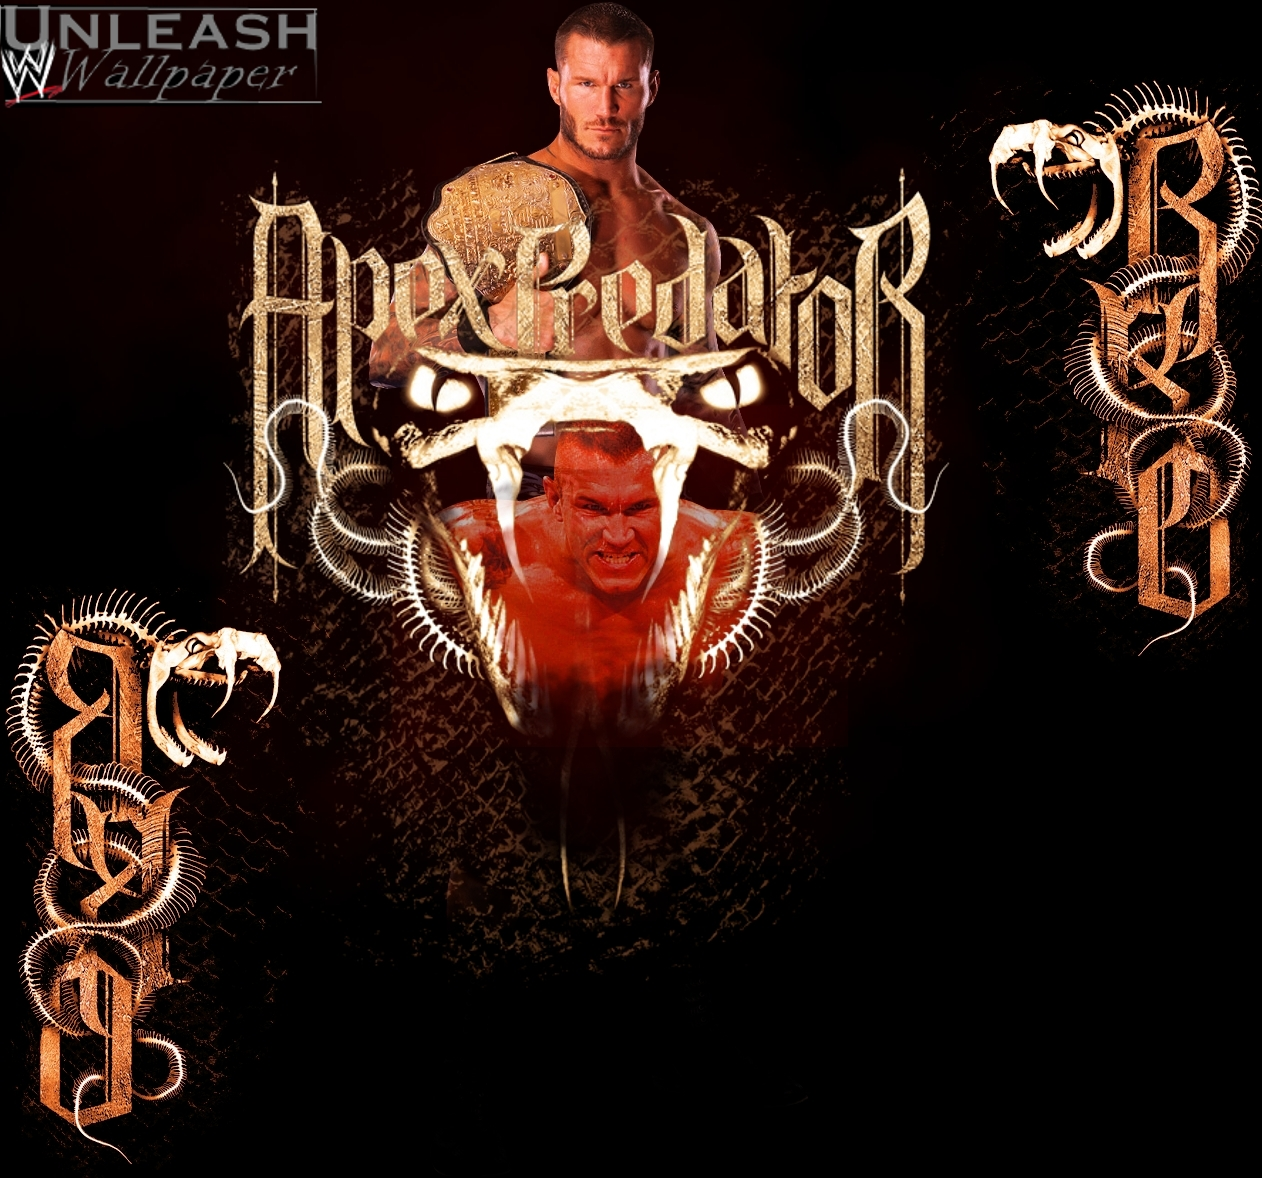 Randy Orton Viper Logo Wallpaper Wallpaper of the viper 1262x1178